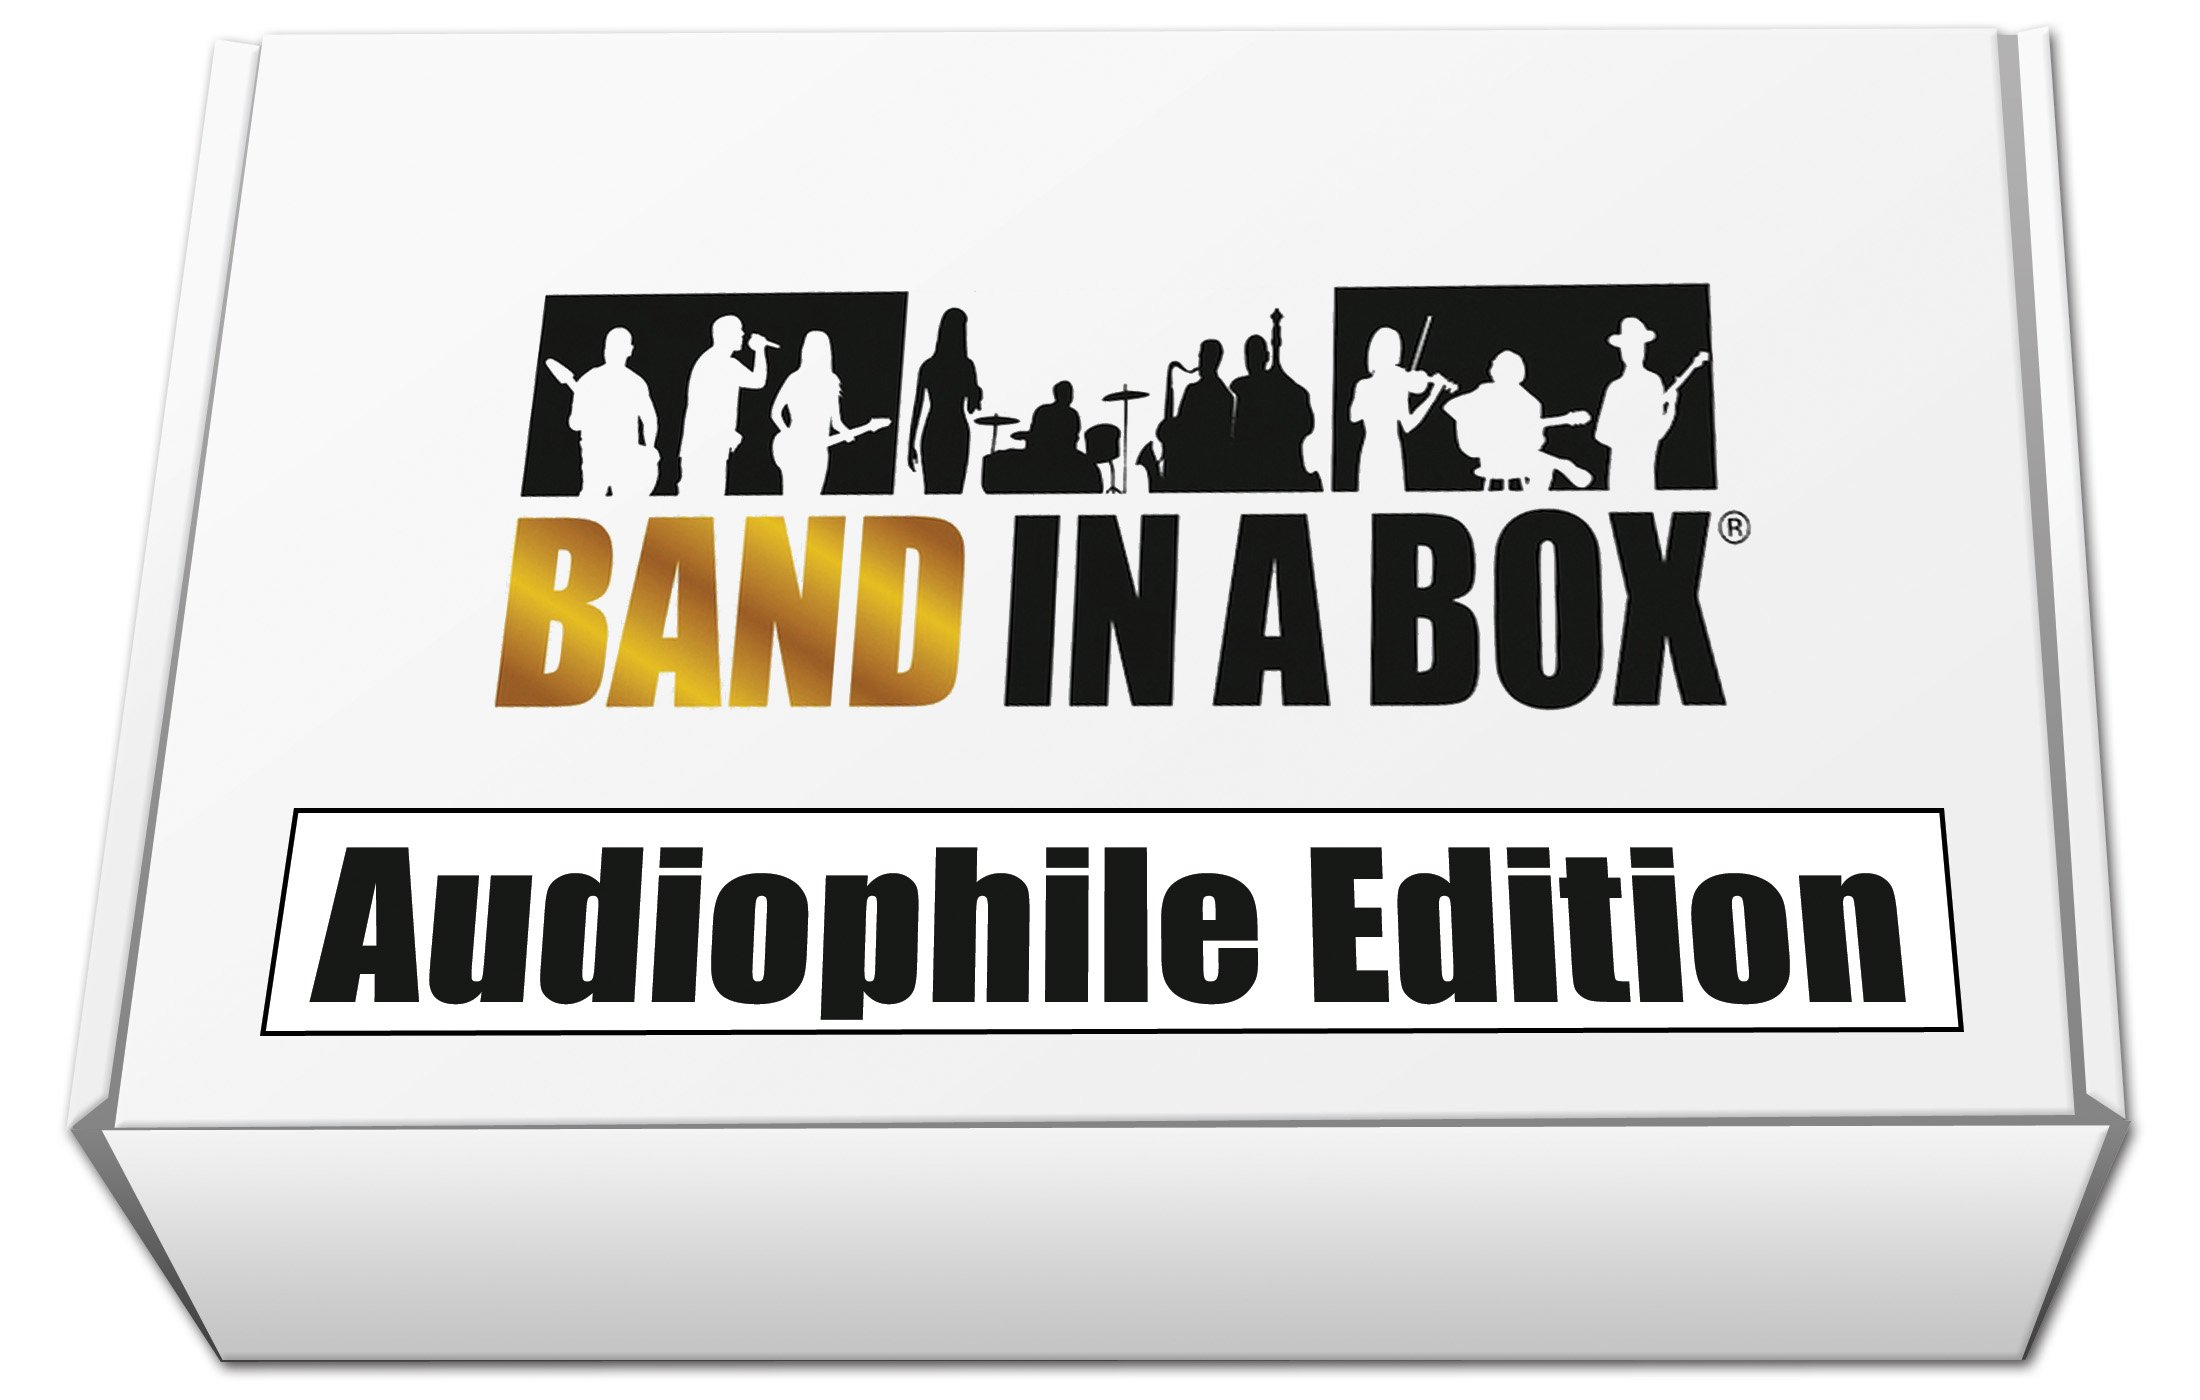 Band-in-a-Box 2019 Audiophile Edition [Windows USB Hard Drive] - Create your own backing tracks by PG Music Inc.